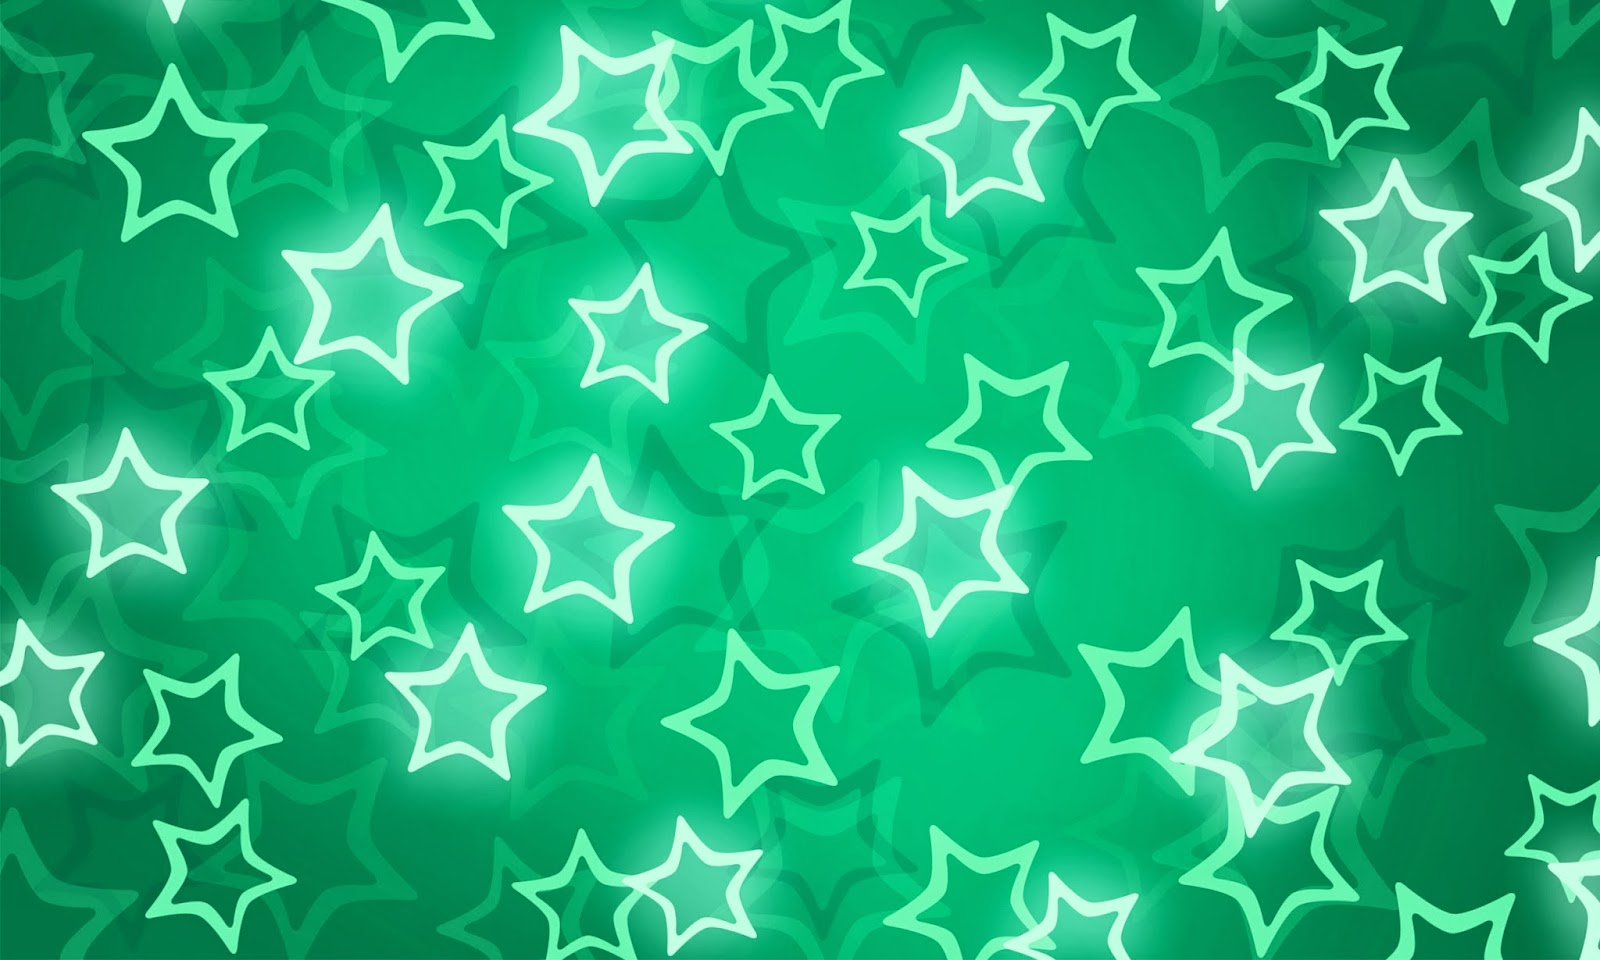 Star abstract hd wallpapers hd wallpapers high for Modern background hd